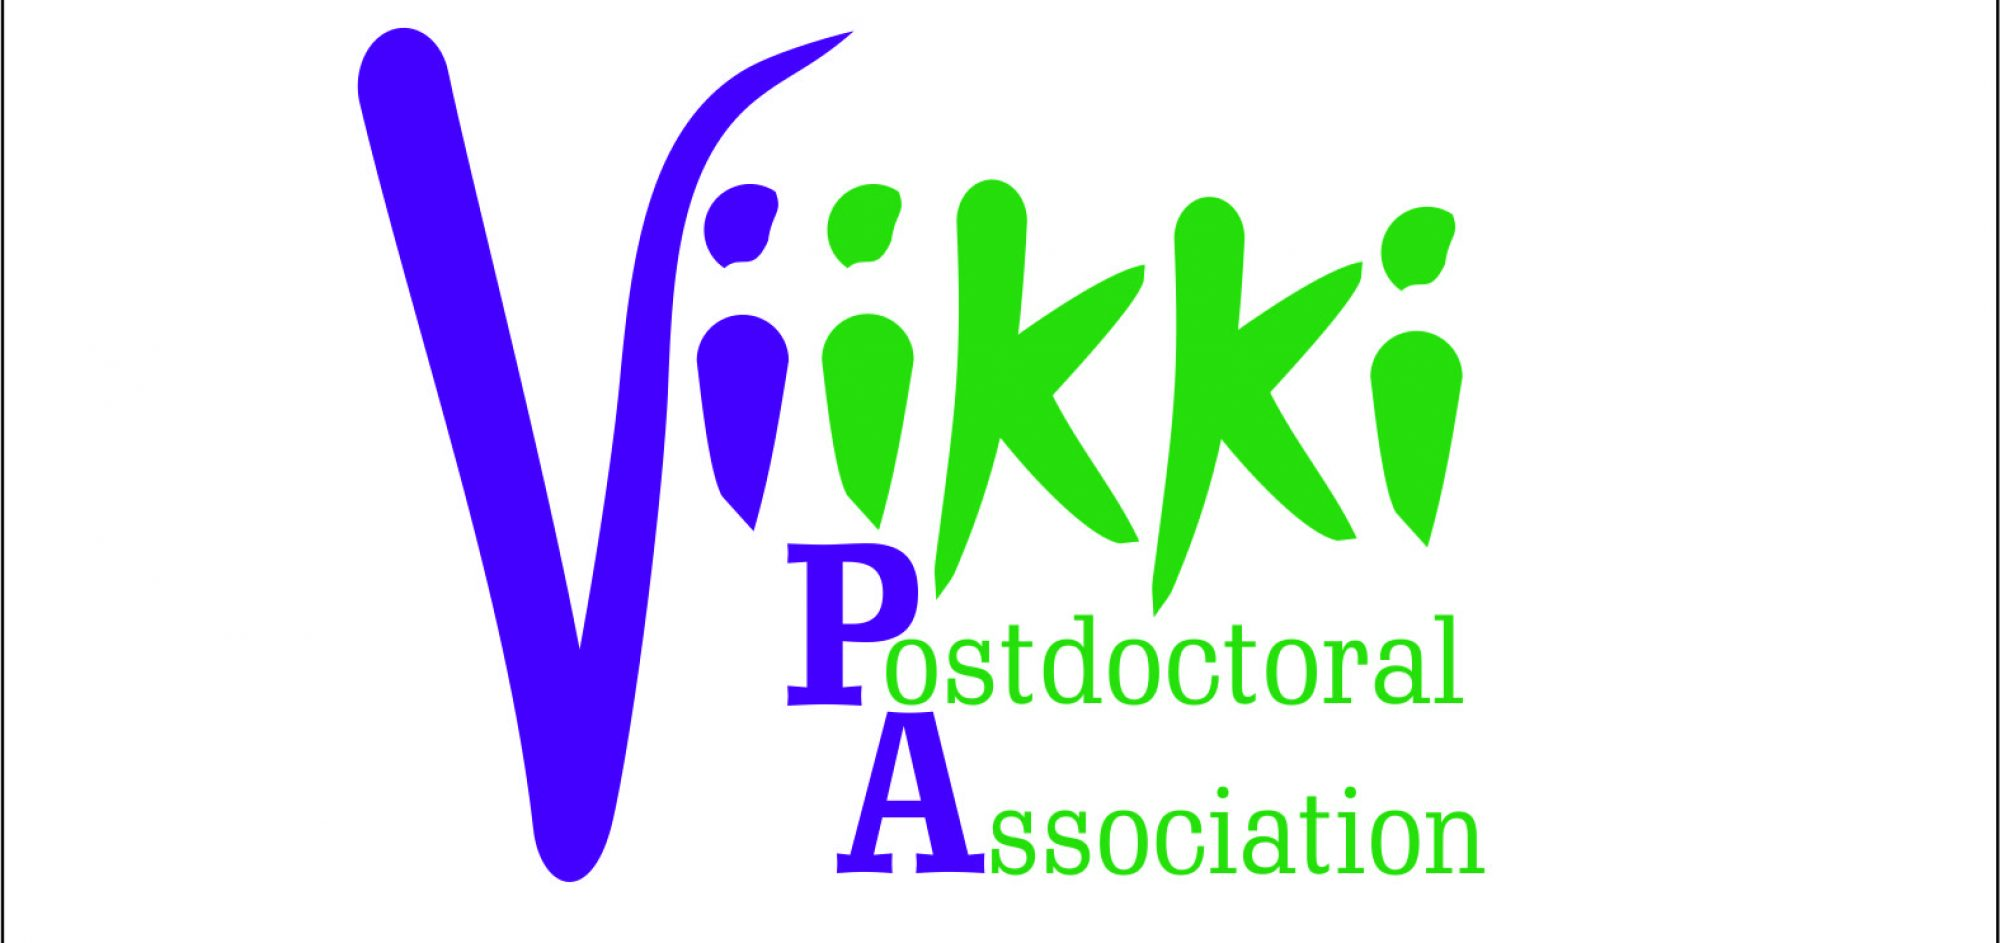 Viikki Postdoctoral Association